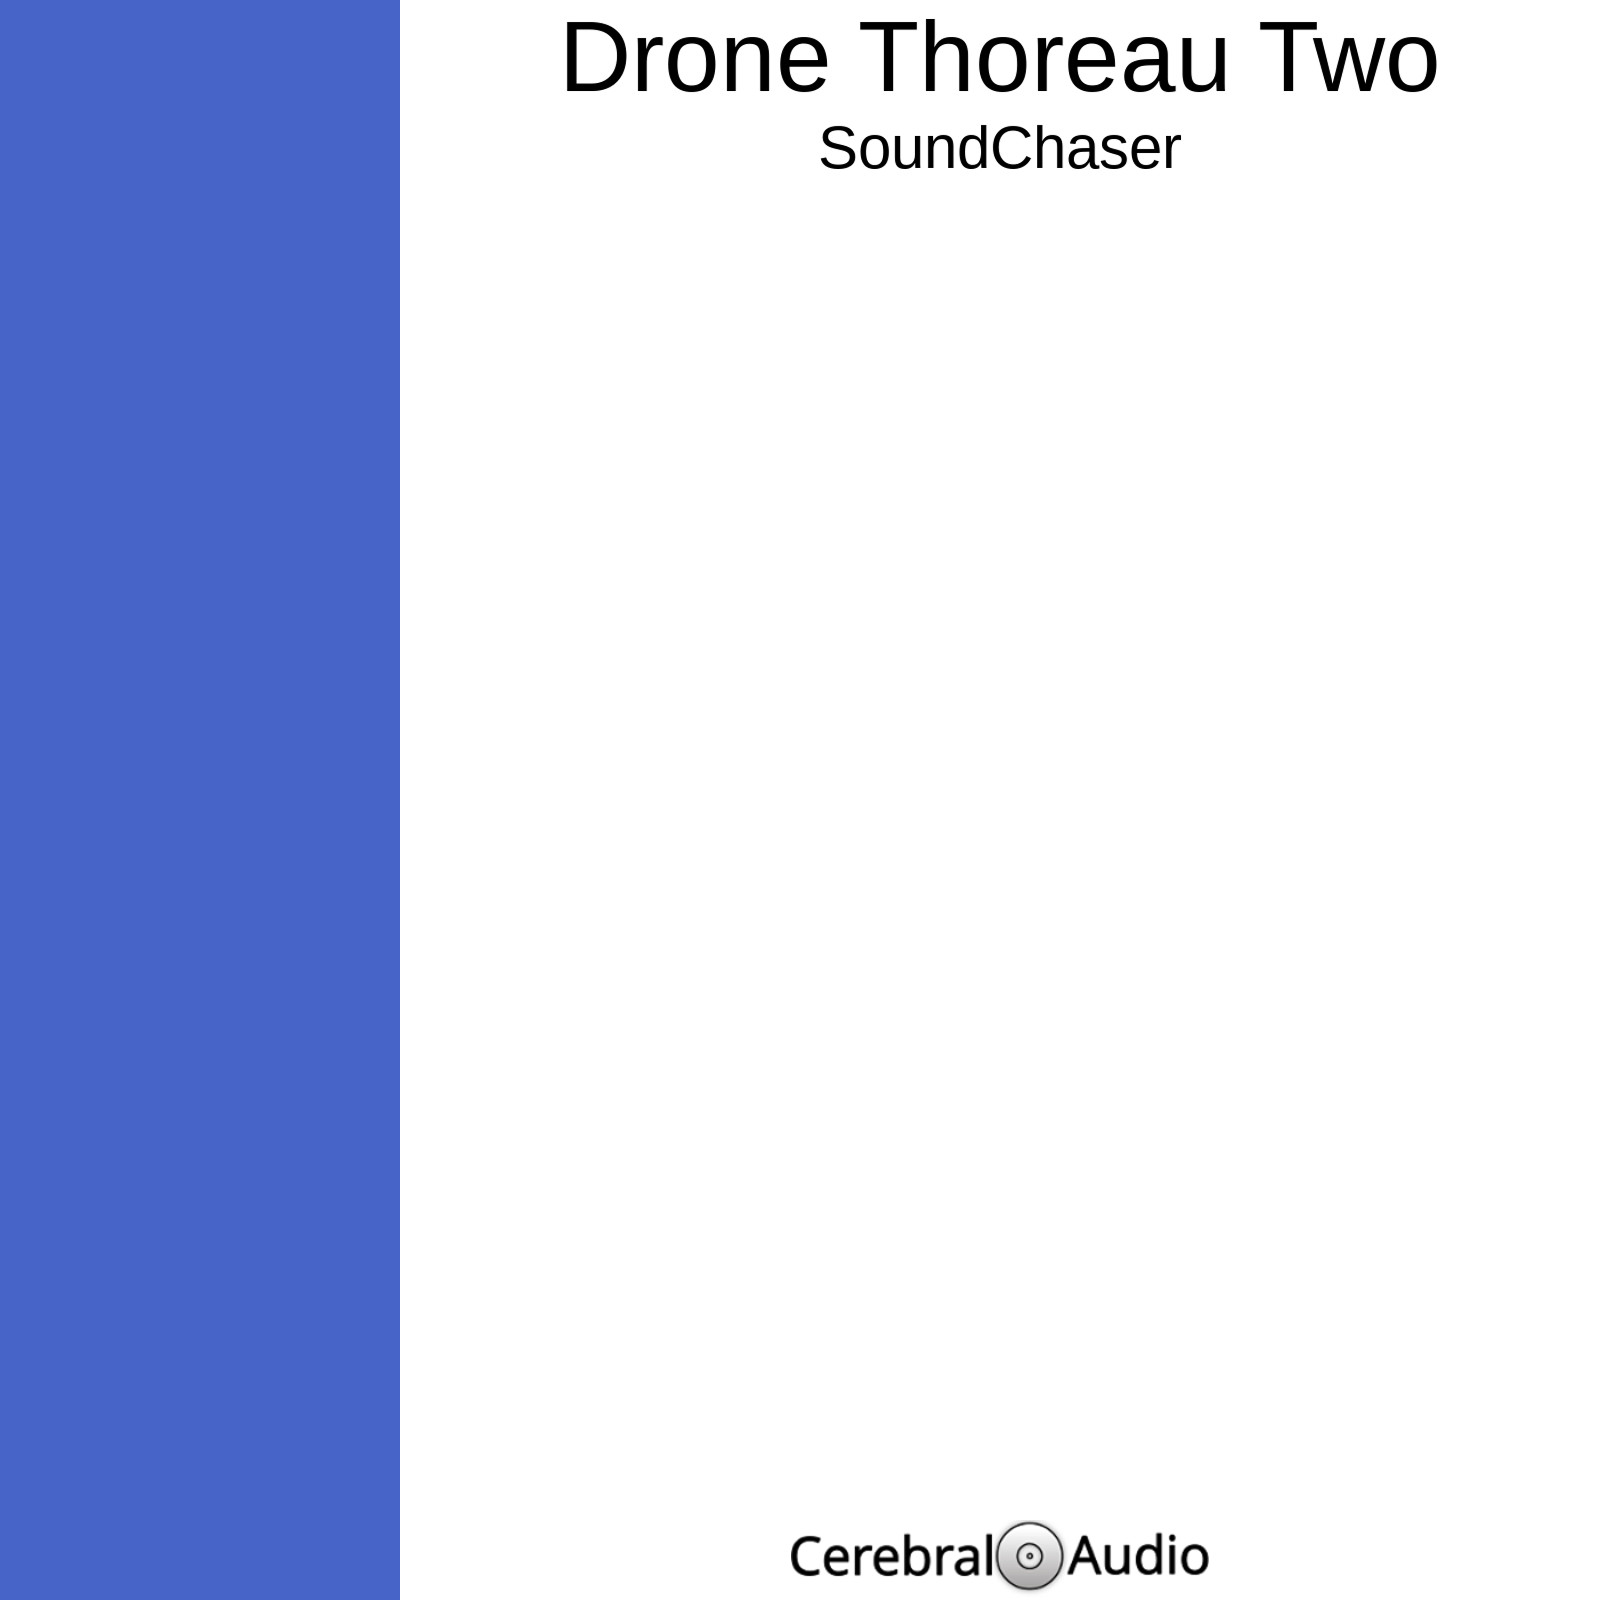 Drone Thoreau Two